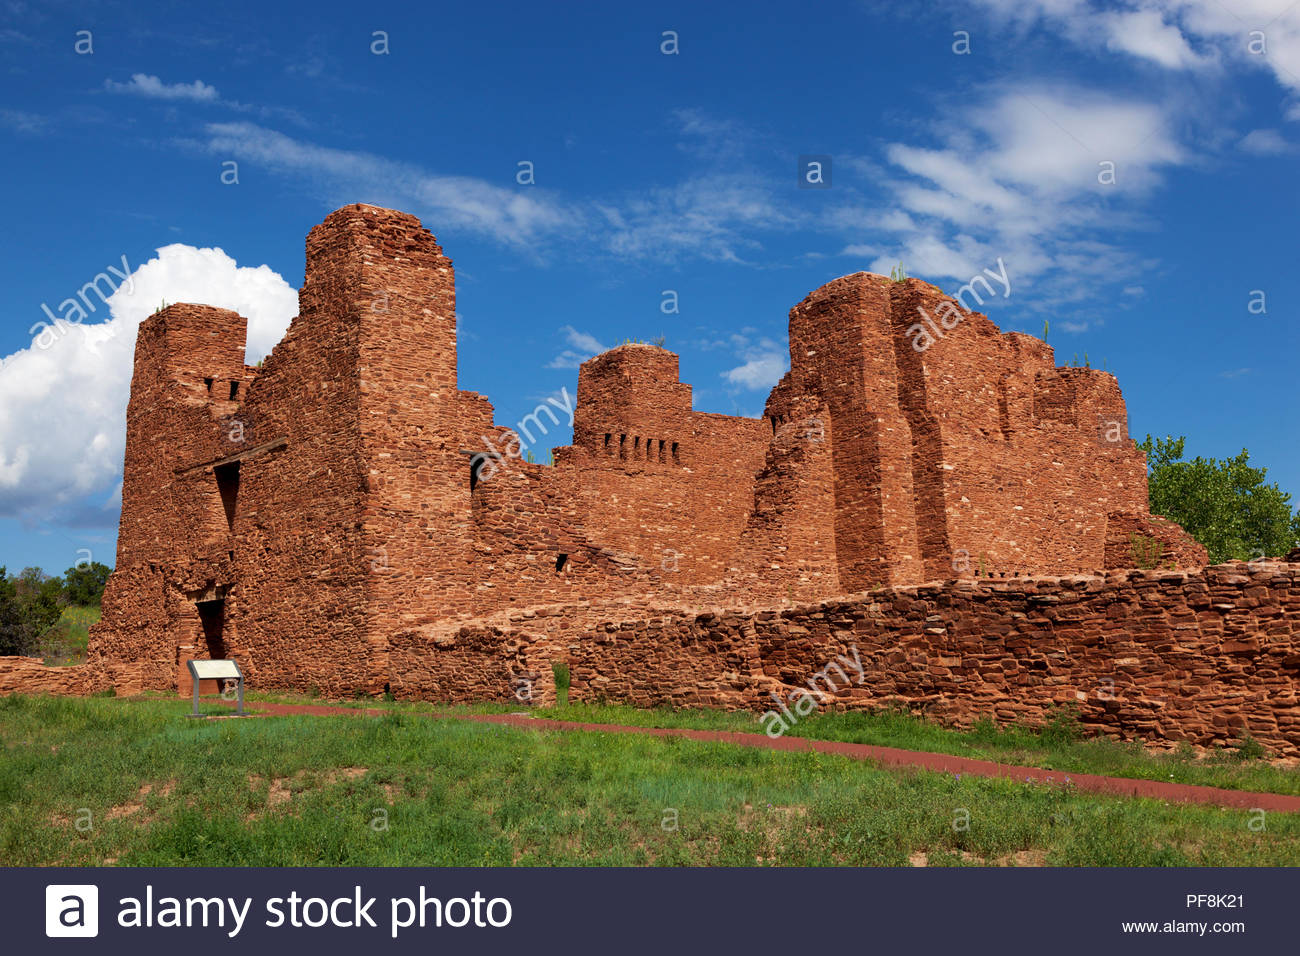 nuestra-senora-de-la-purisima-concepcion-de-quarai-also-cuarac-quarai-ruins-salinas-pueblo-missions-national-monument-church-in-new-mexico-PF8K21.jpg